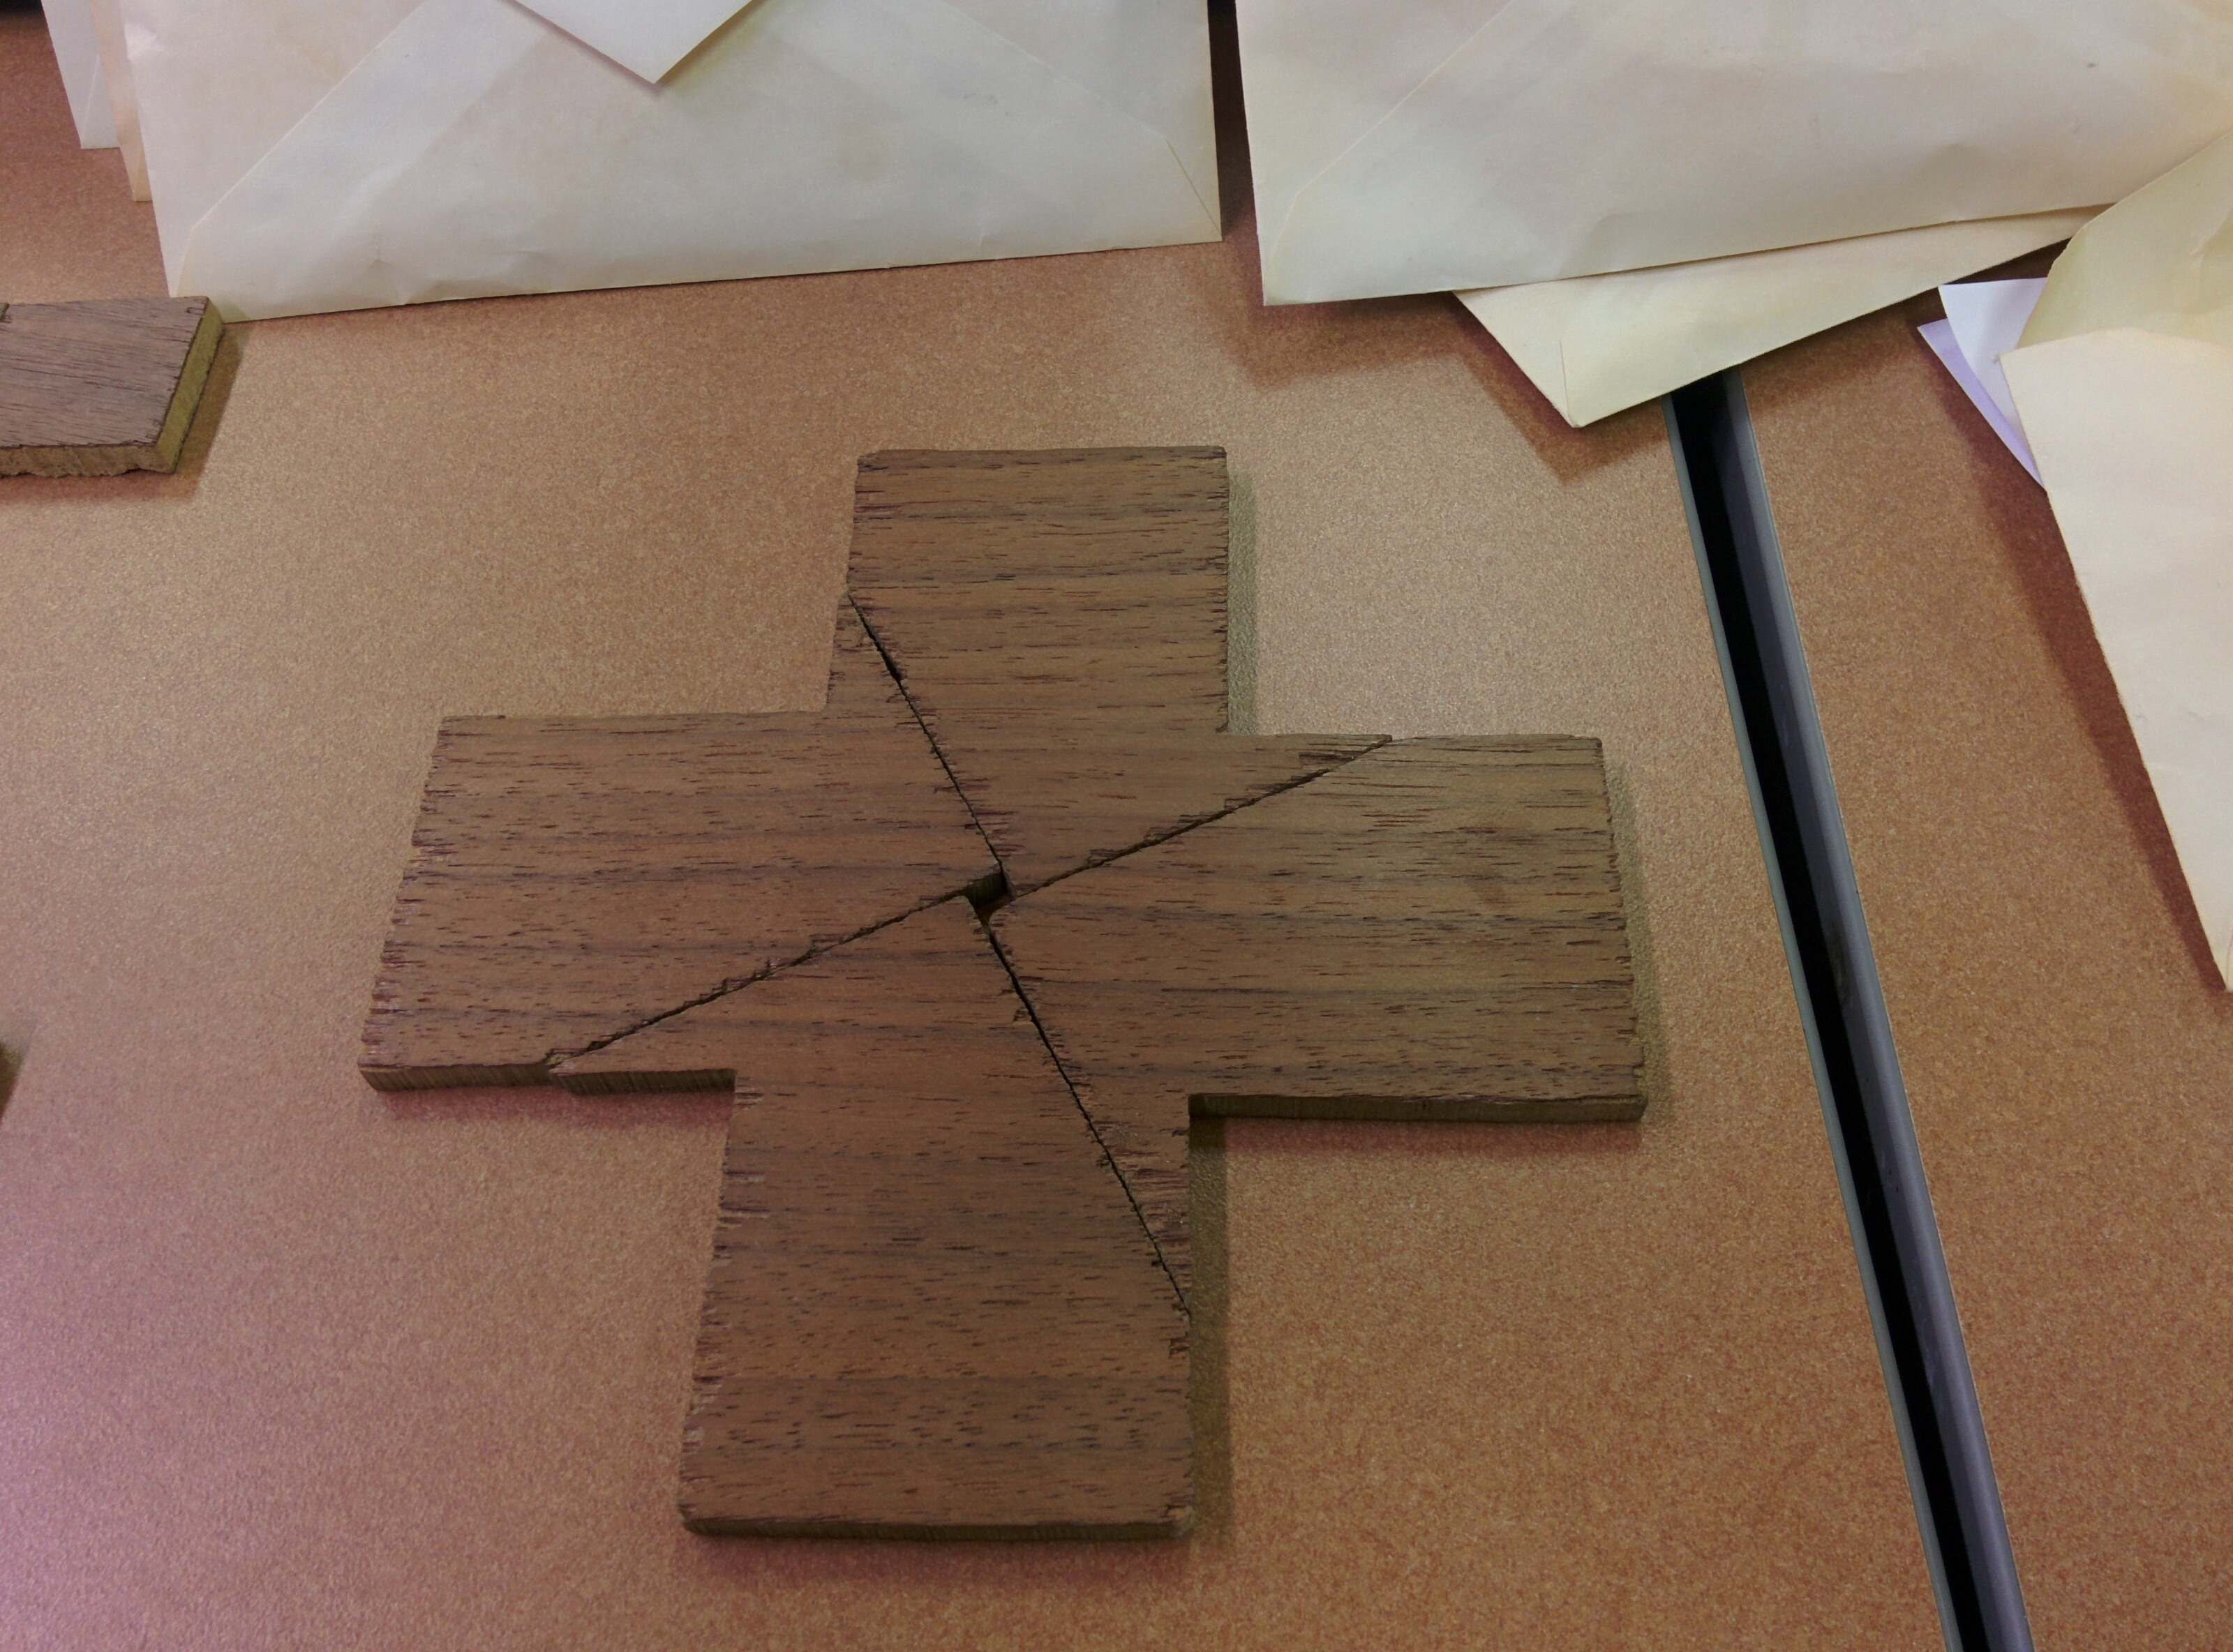 The Greek Cross and Square puzzle · Literacy Artifacts